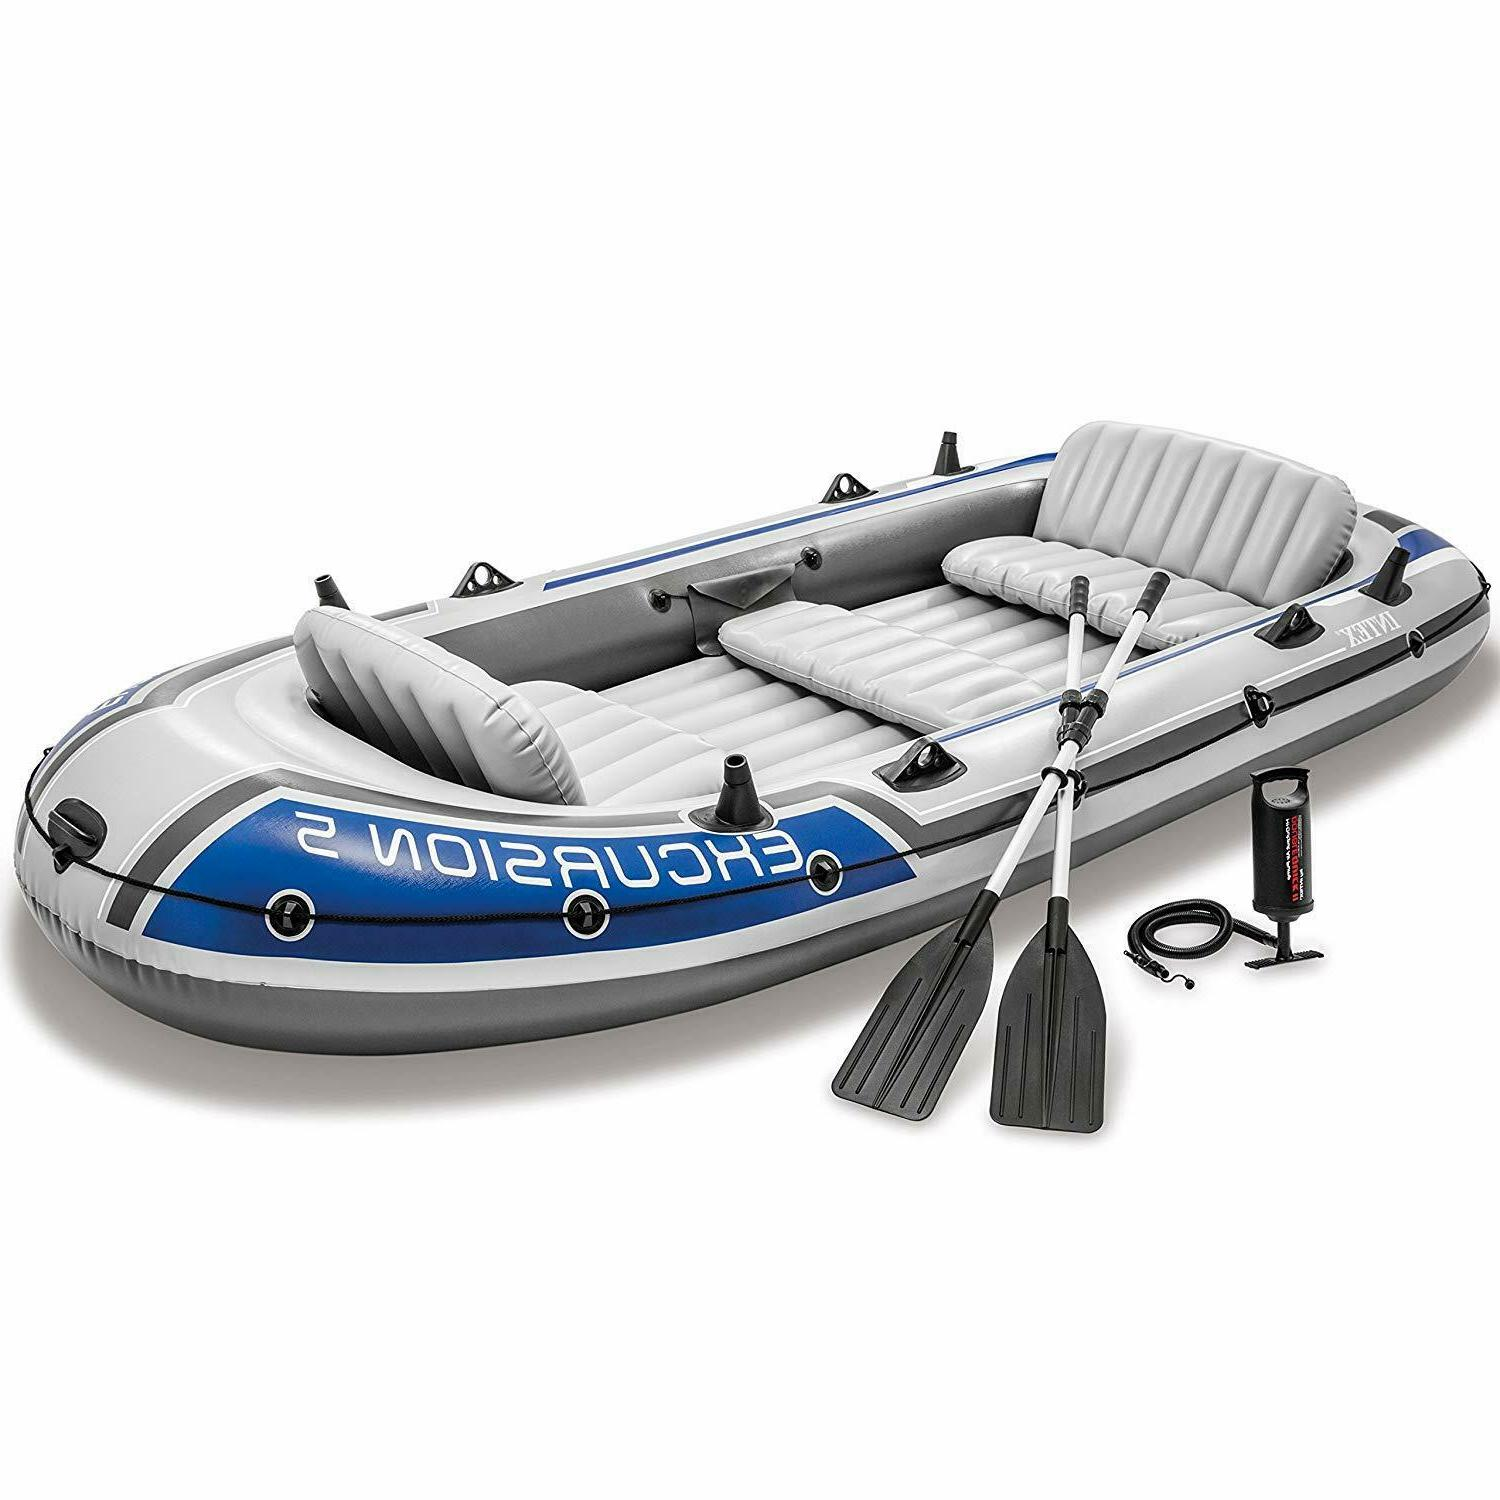 5 person inflatable boat set dinghy rescue